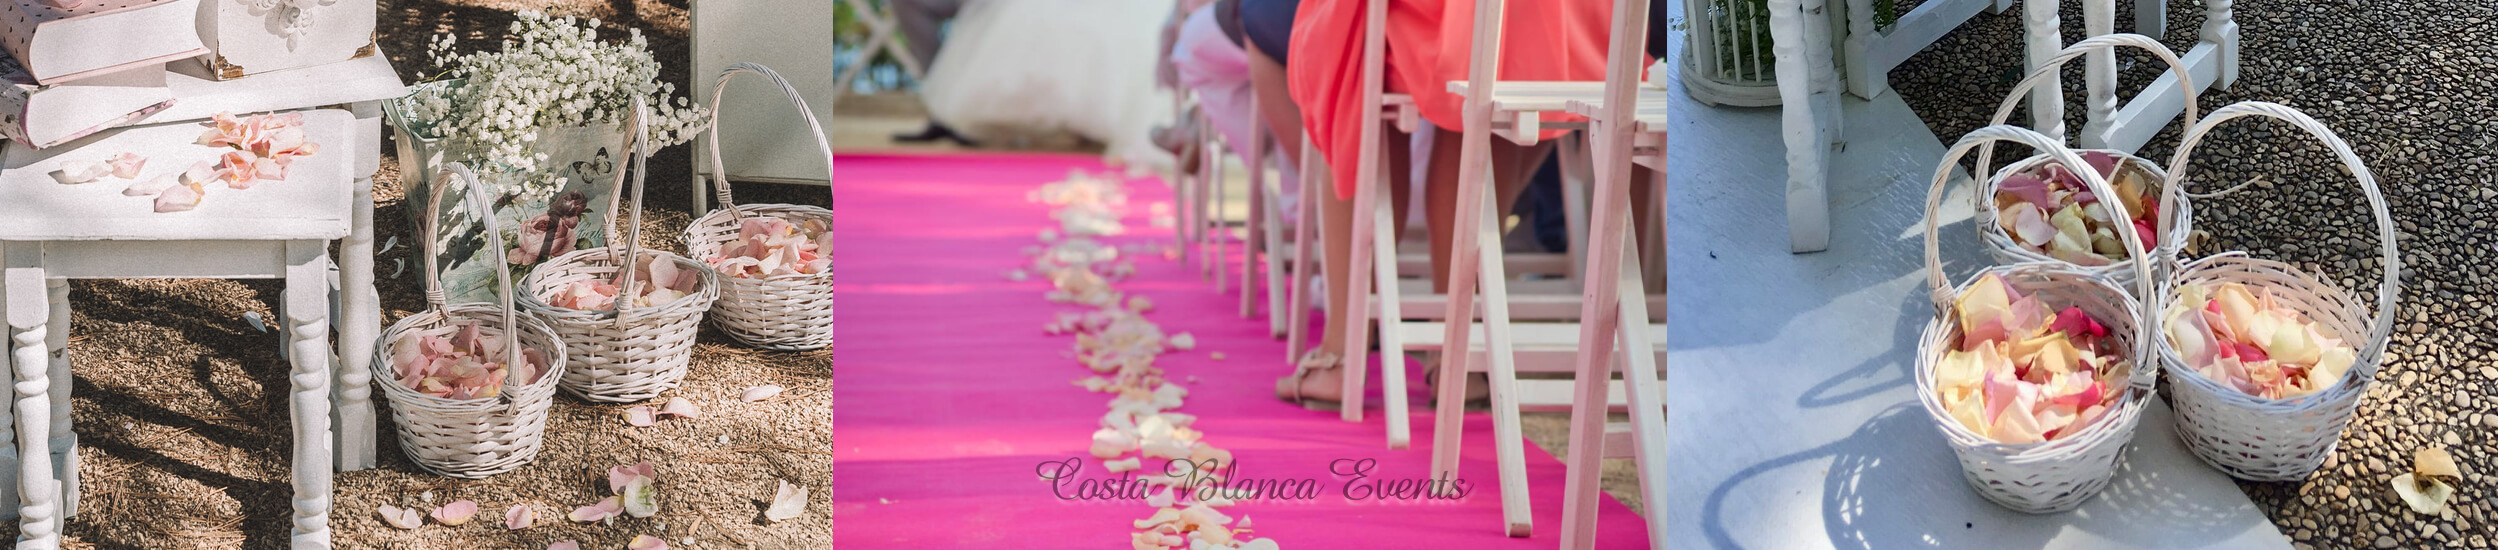 Flower petals on the aisle during a wedding complete everything